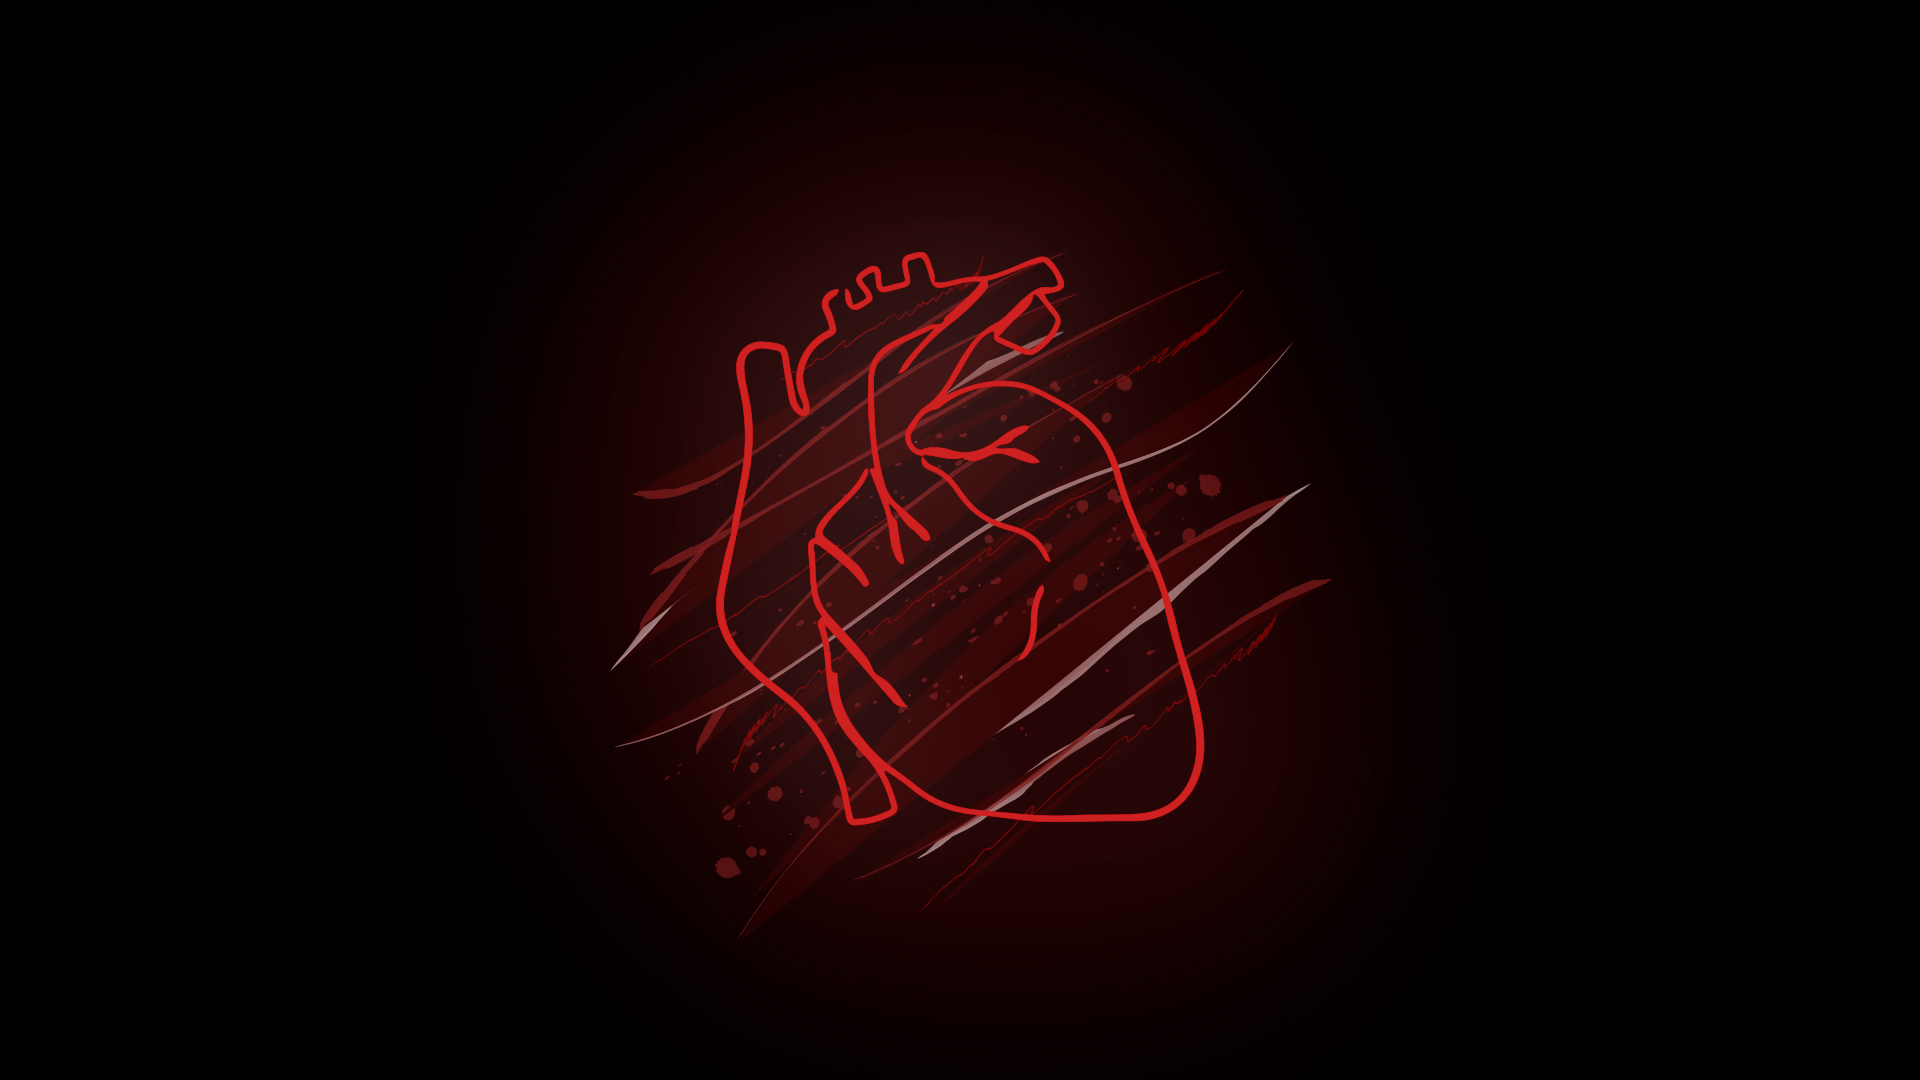 Illustration of a glowing human heart